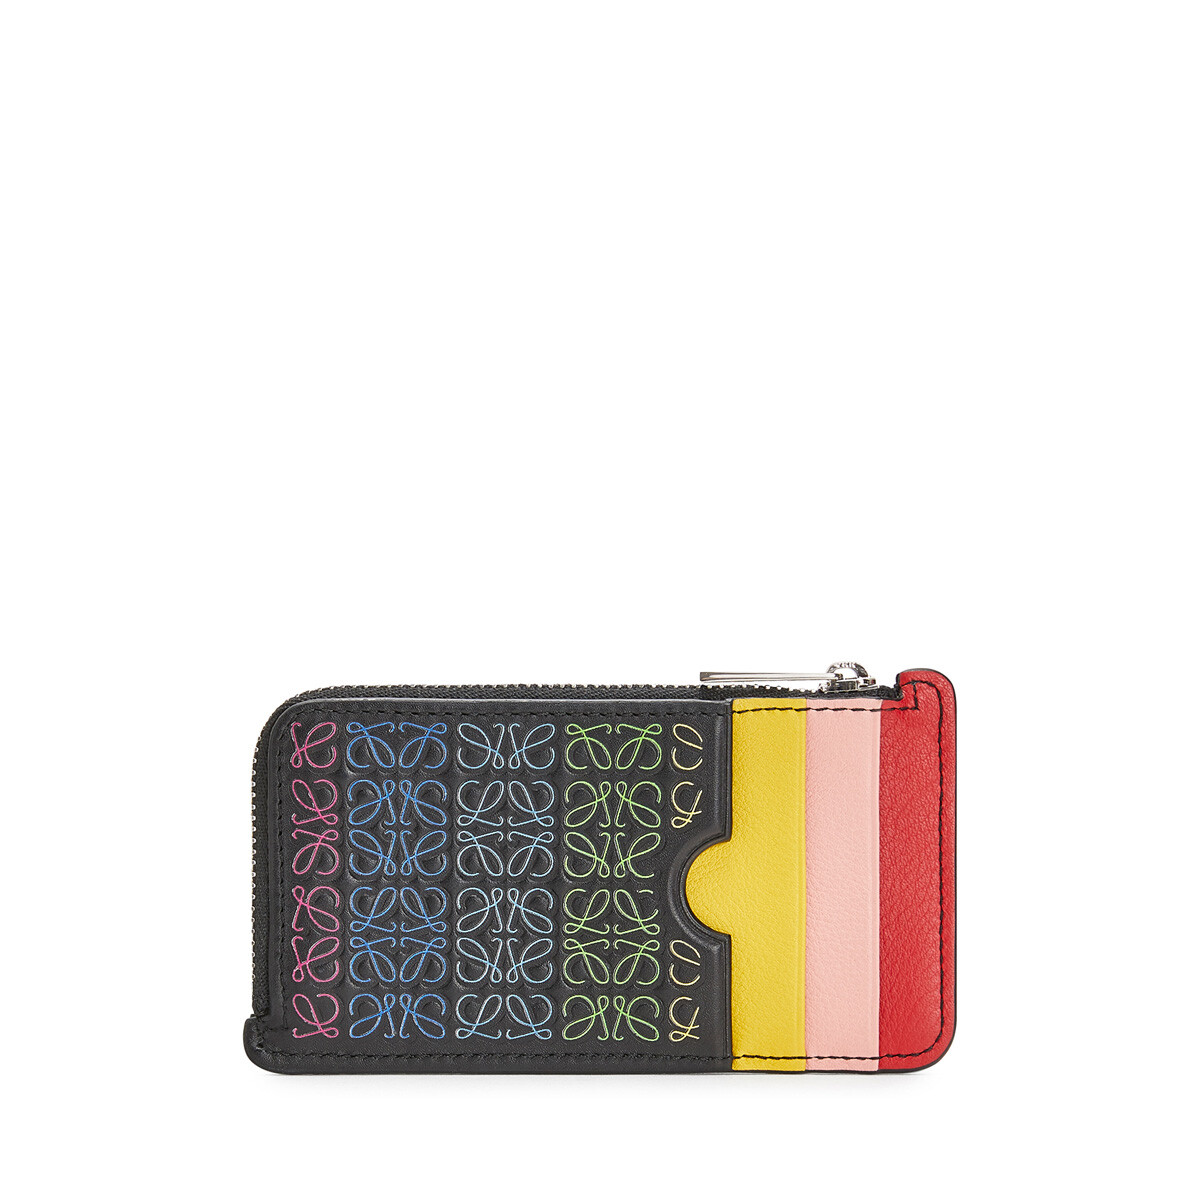 LOEWE Repeat C/C Holder Black/Multicolor front